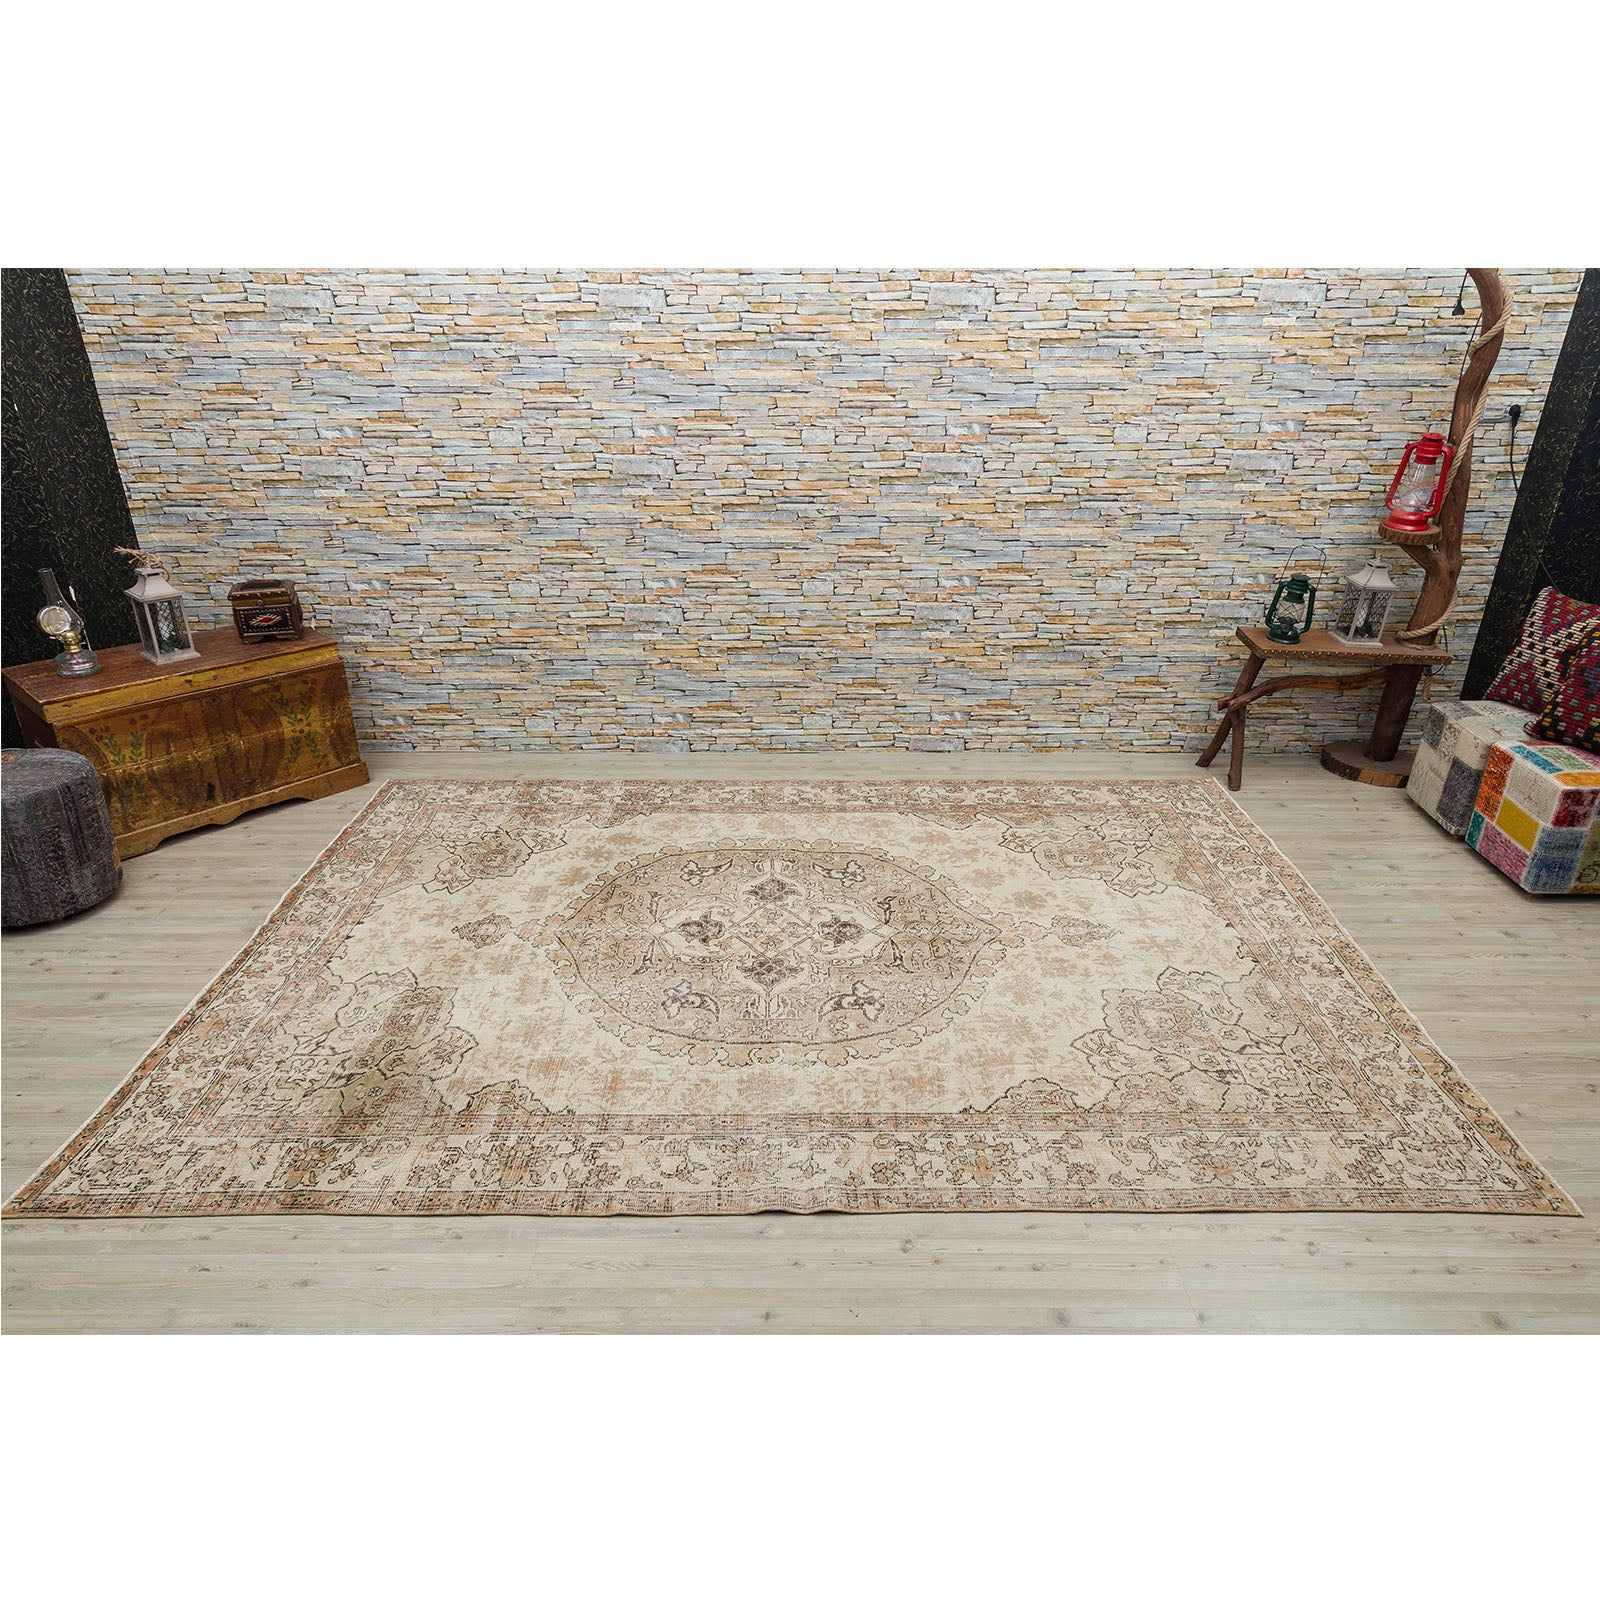 Hali 209X308  CM Bursa Handmade over dyed rug  2532